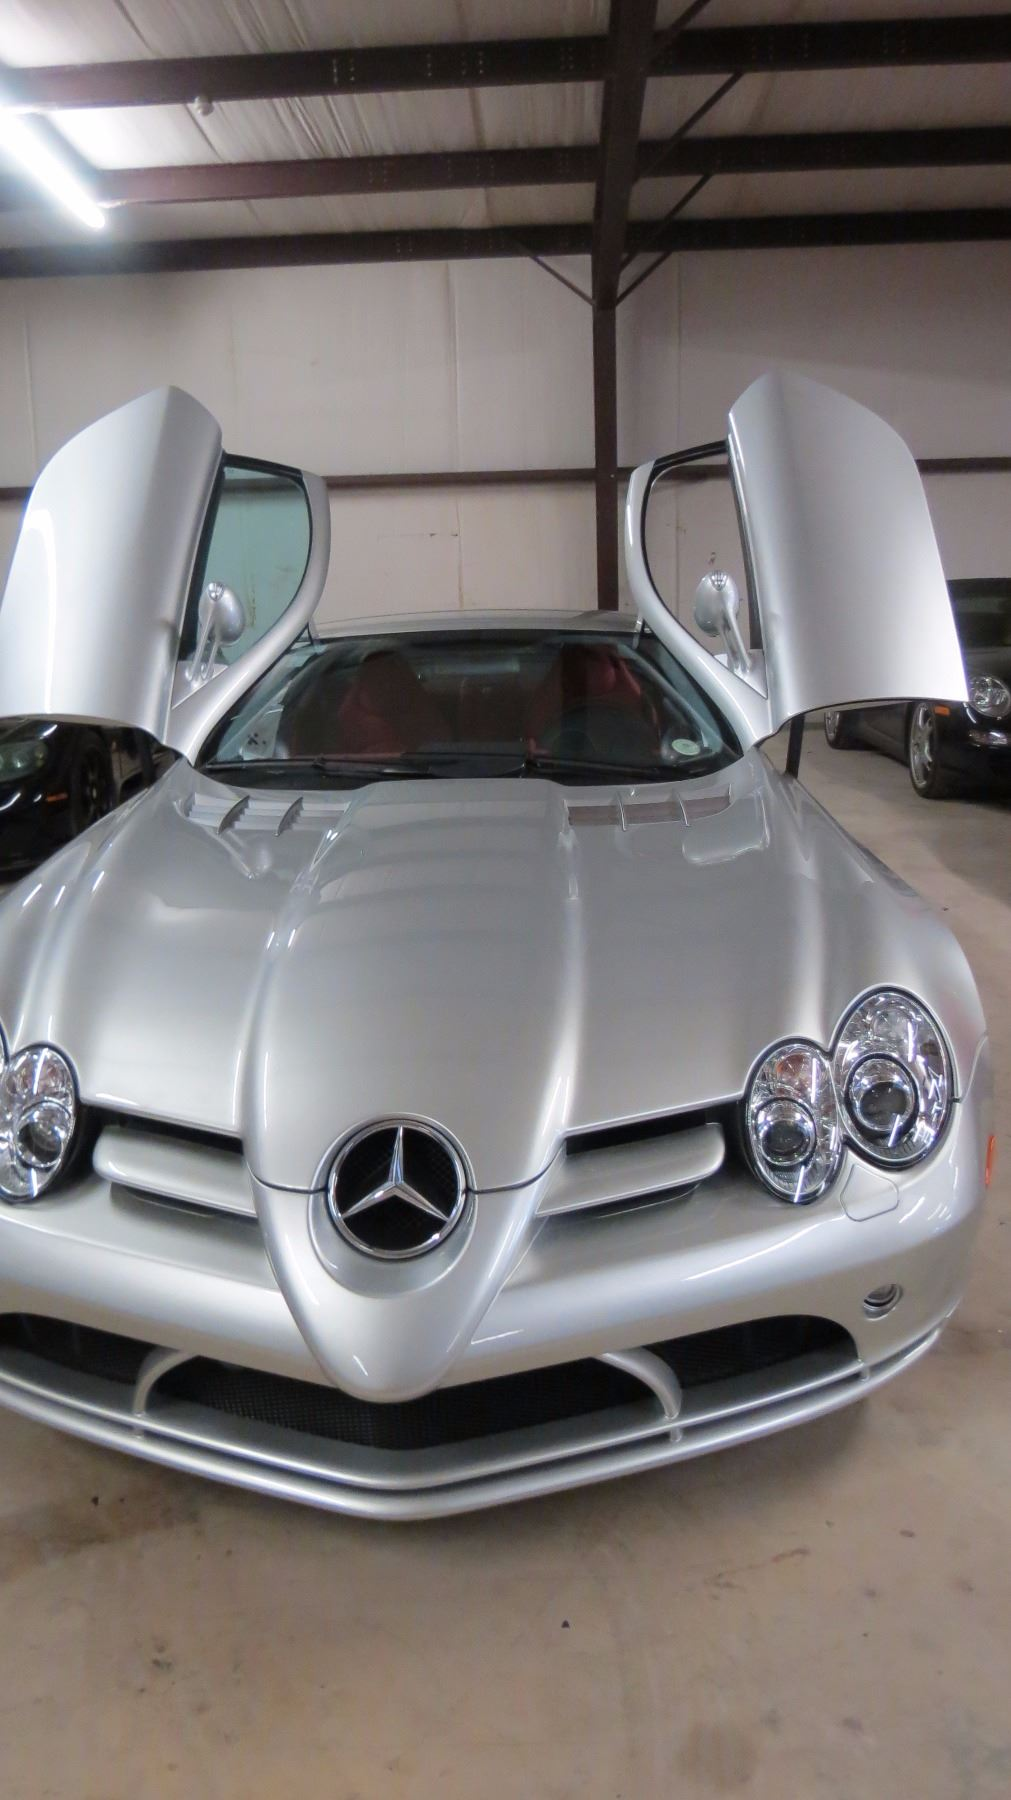 ... Image 7  2005 Mercedes-Benz SLR McLaren Coupe with Butterfly Doors; 5.5L ... & 2005 Mercedes-Benz SLR McLaren Coupe with Butterfly Doors; 5.5L V8 ...